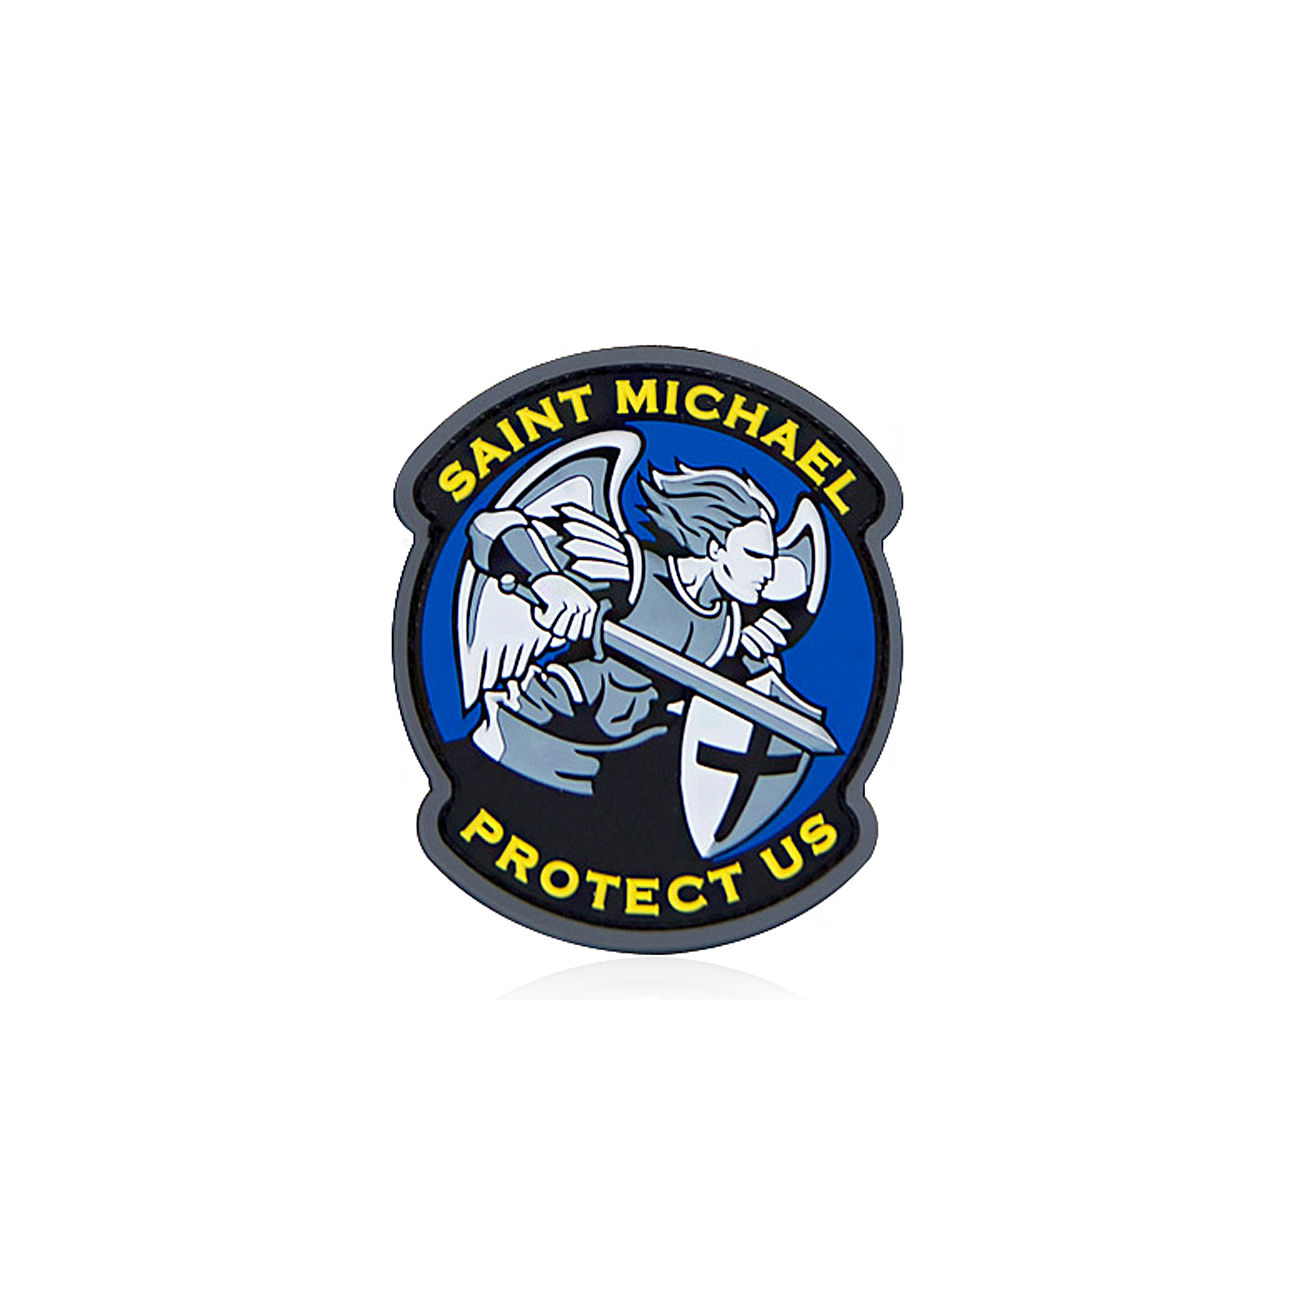 Mil-Spec Monkey 3D Rubber Patch Saint Michael Modern PVC fullcolor 0